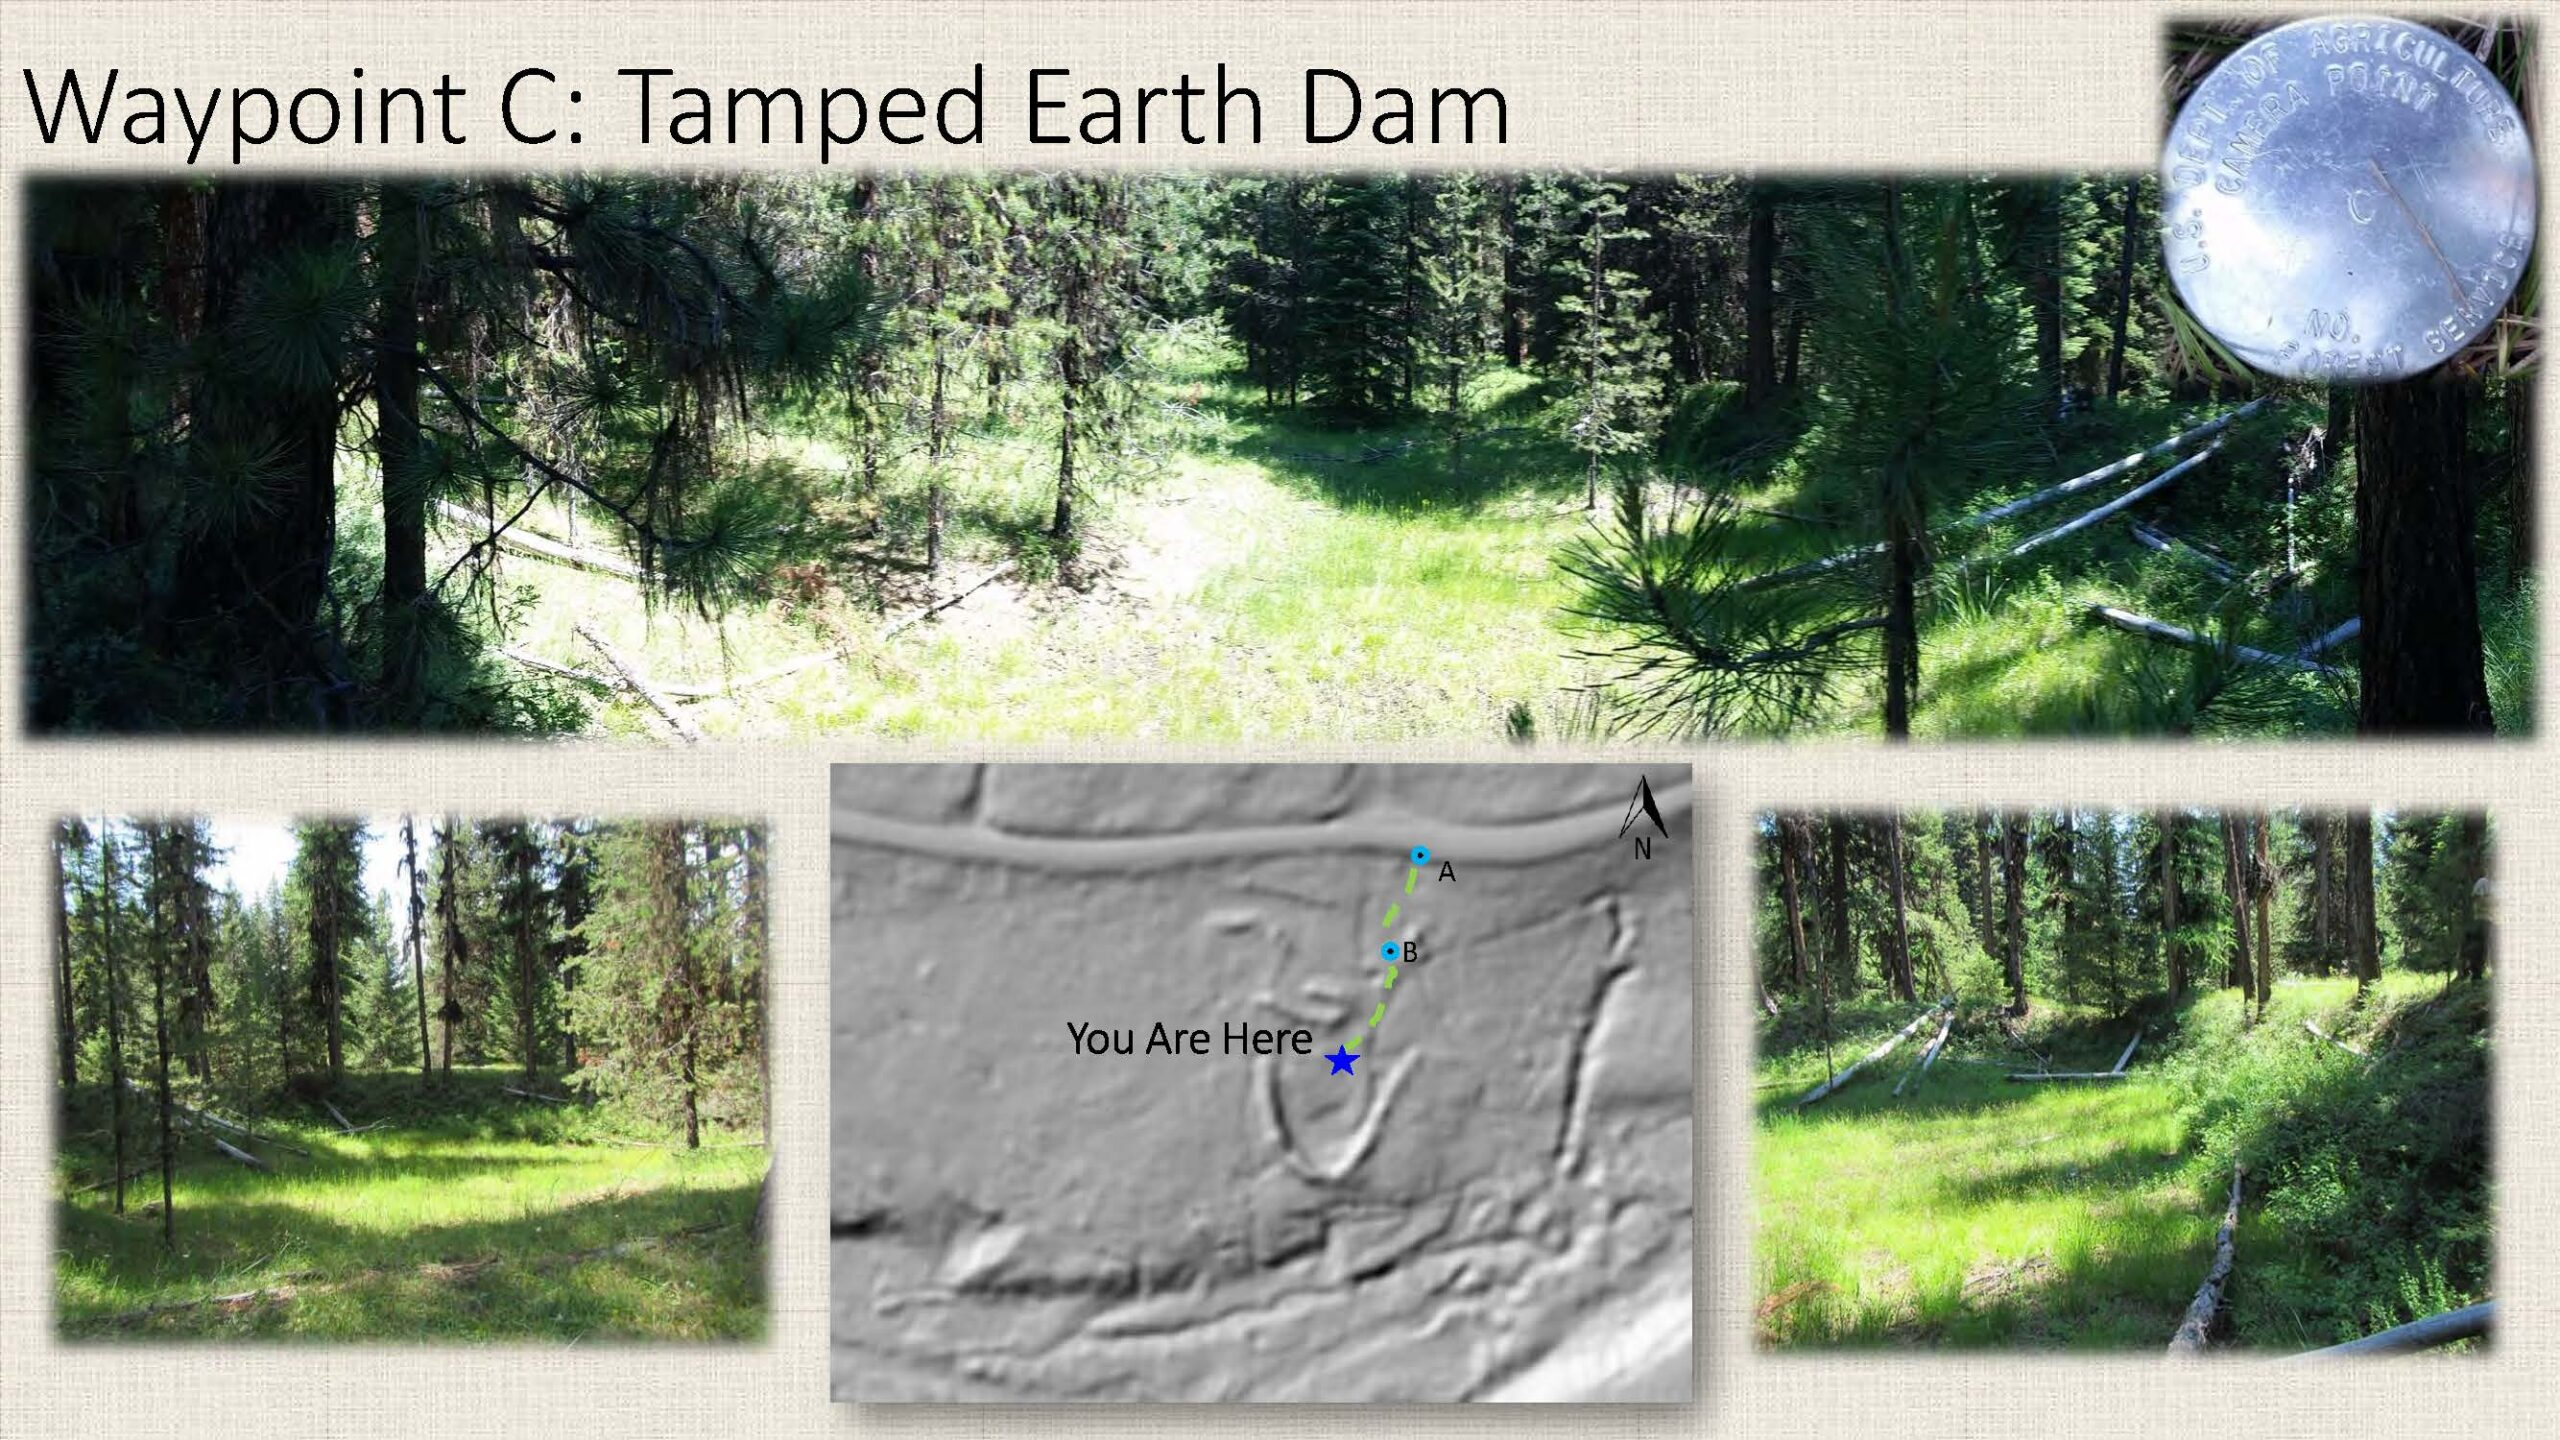 Waypoint C: Tamped Earth Dam